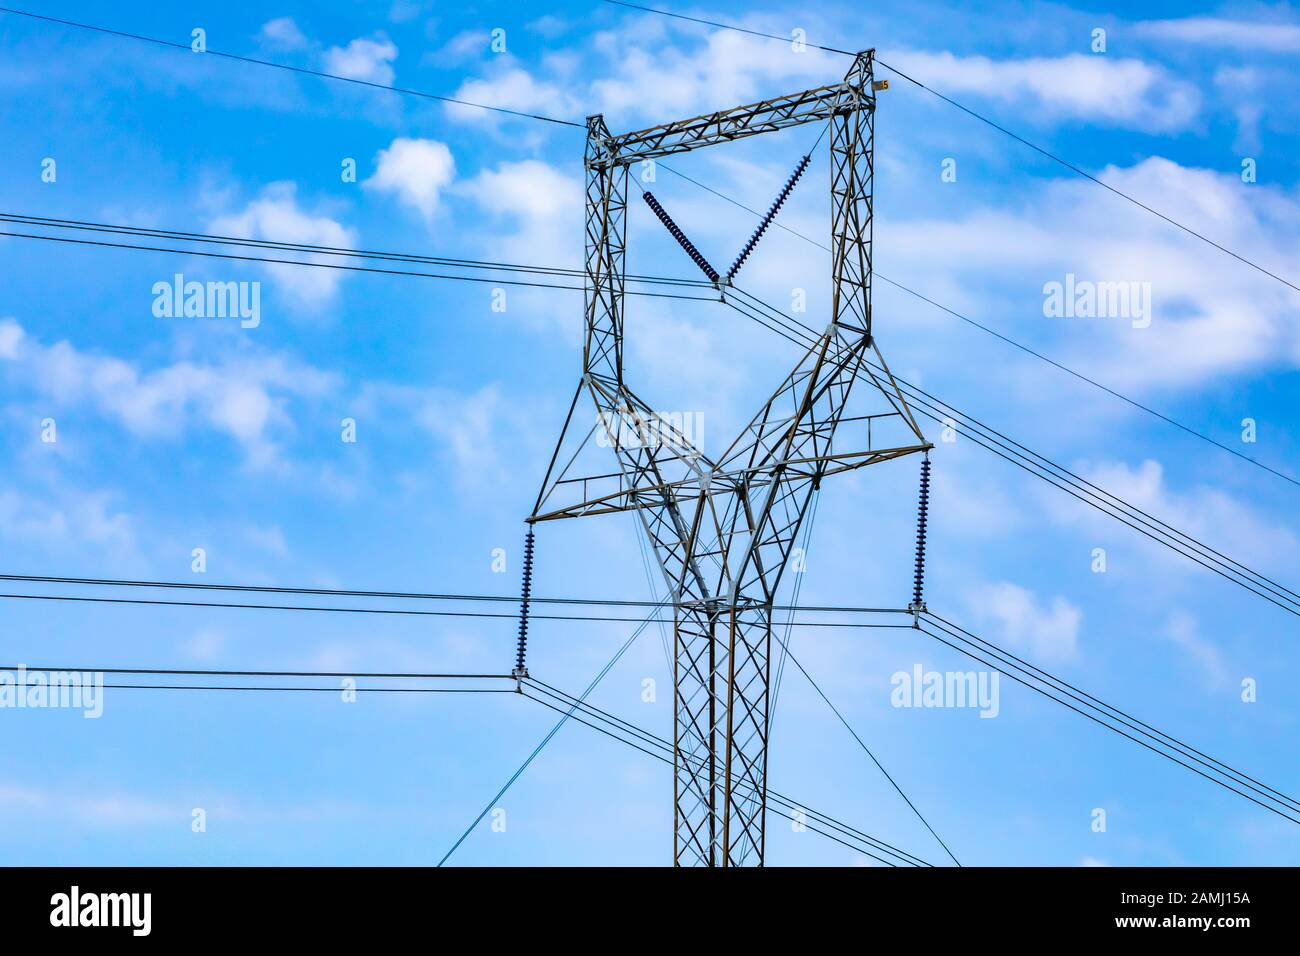 Overhead Line Equipment High Resolution Stock Photography And Images Alamy